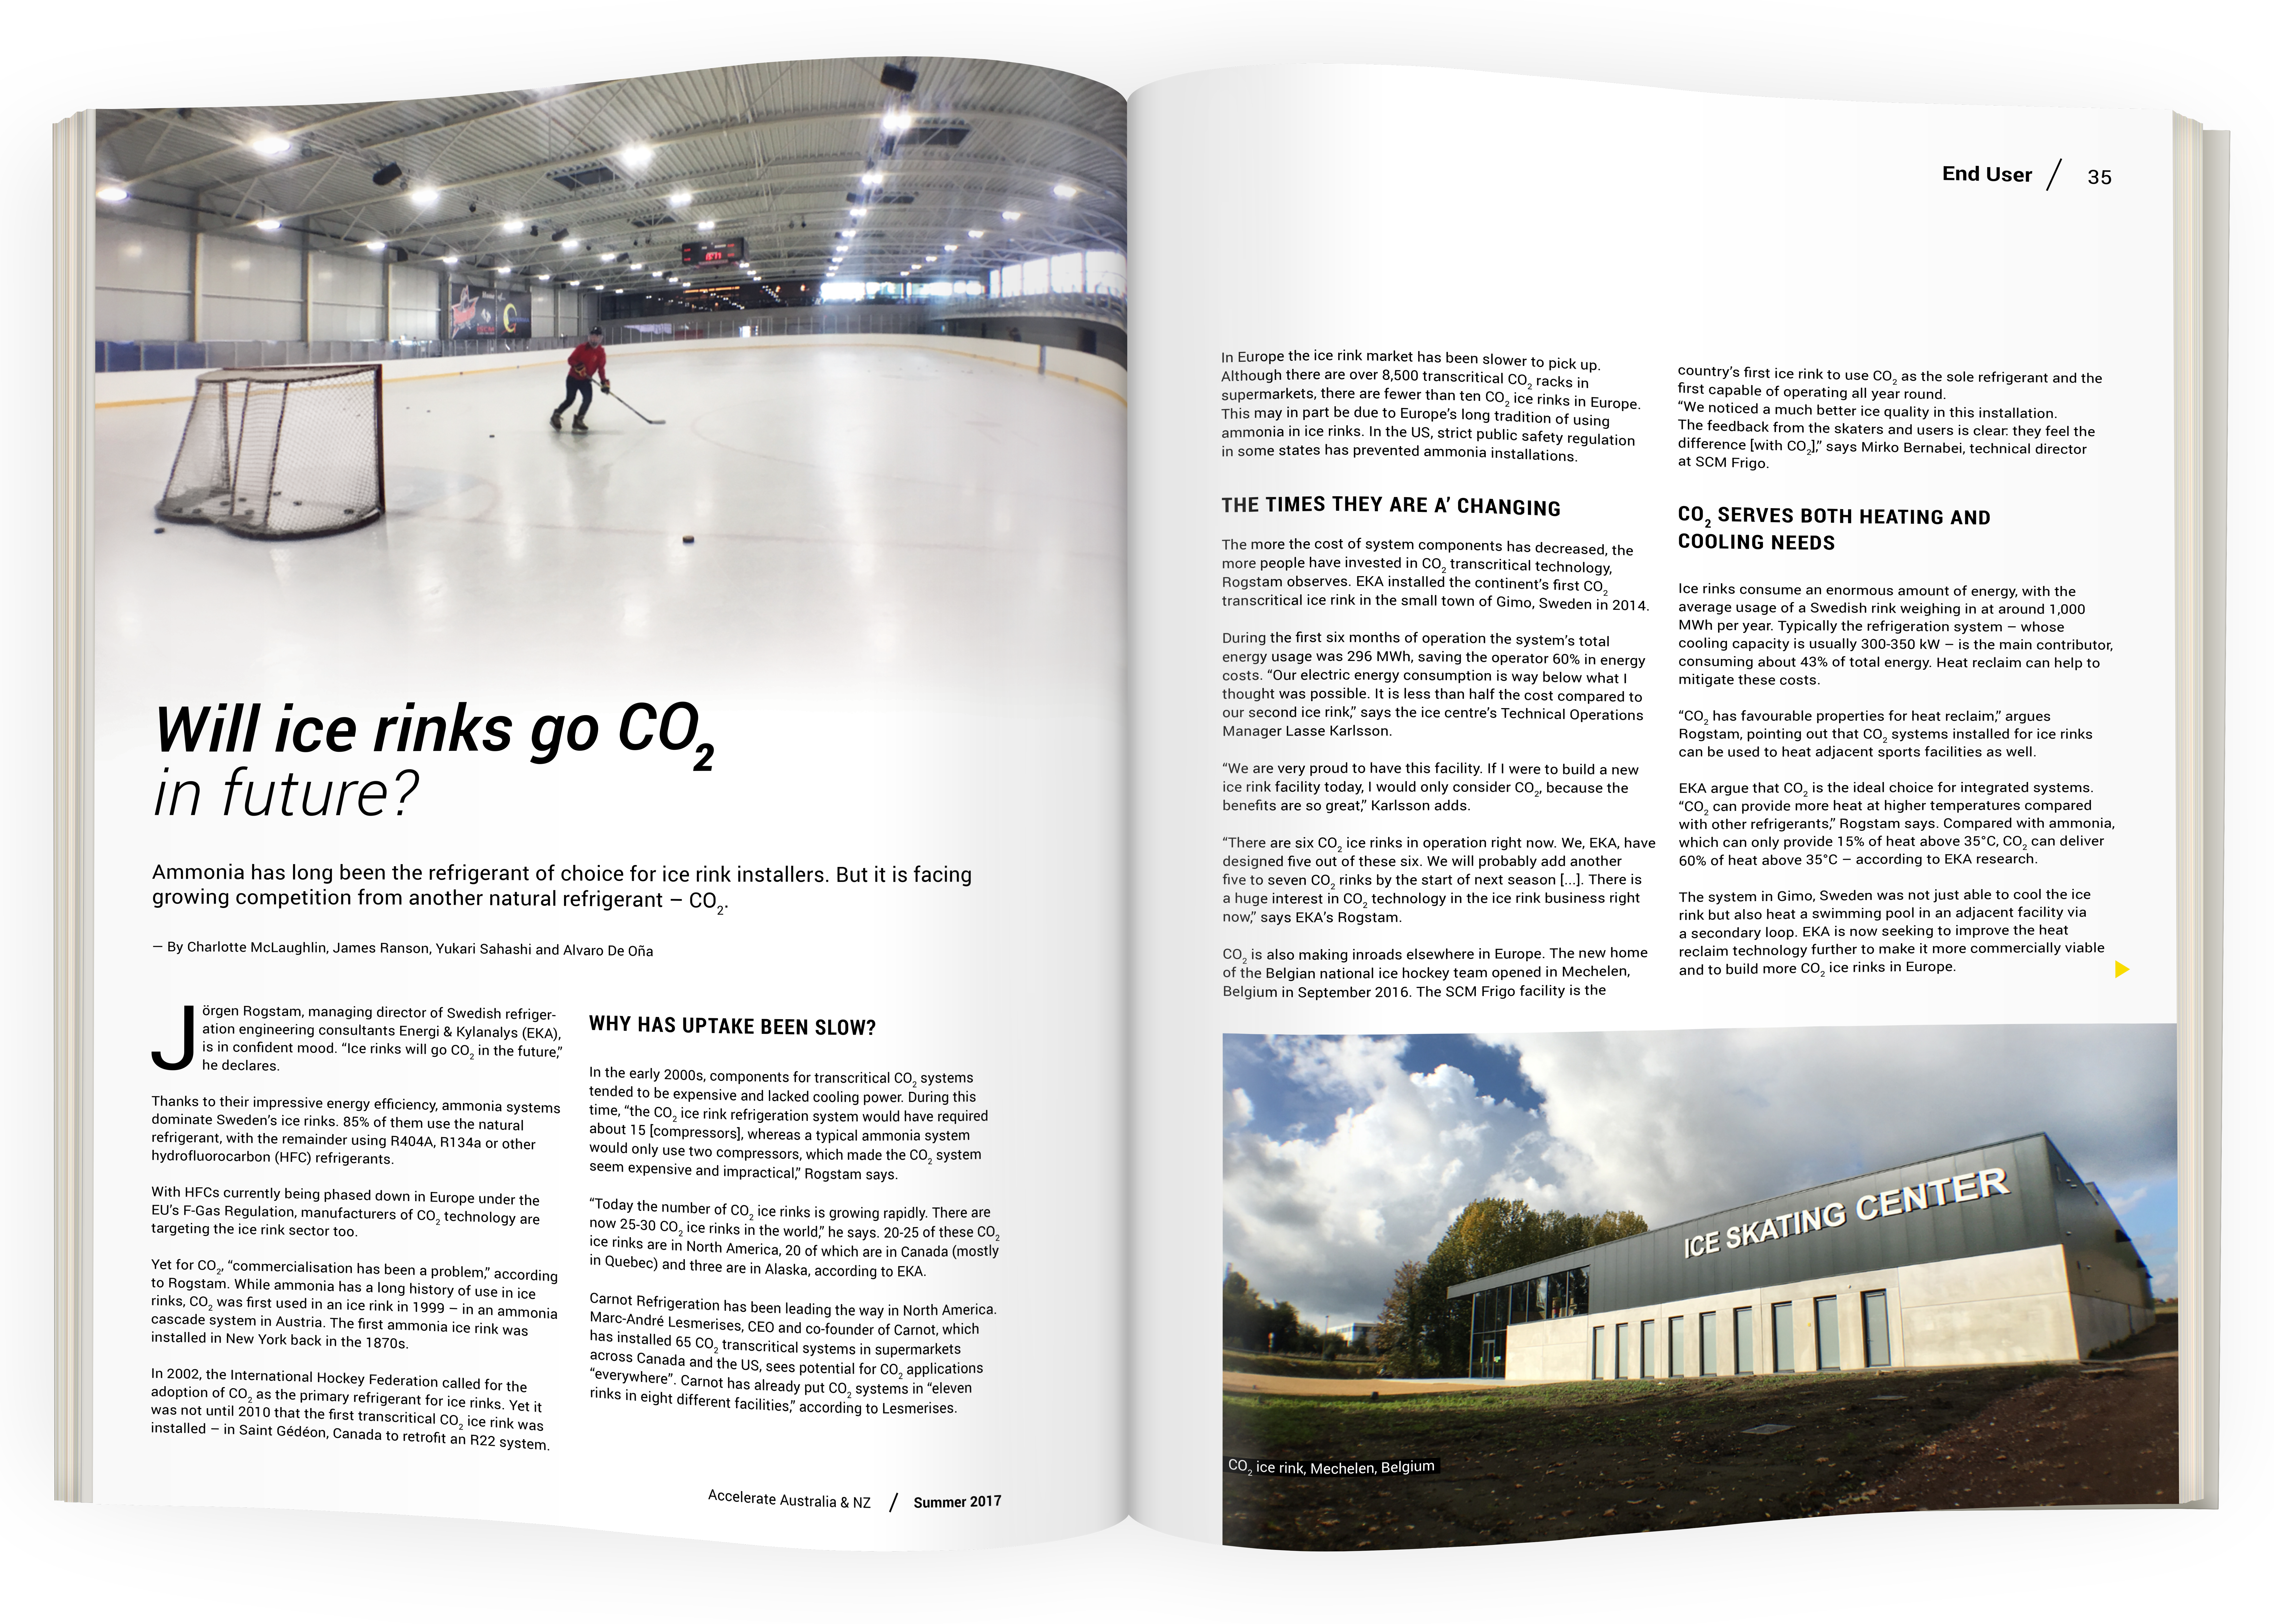 Will ice rinks go CO2 in future?